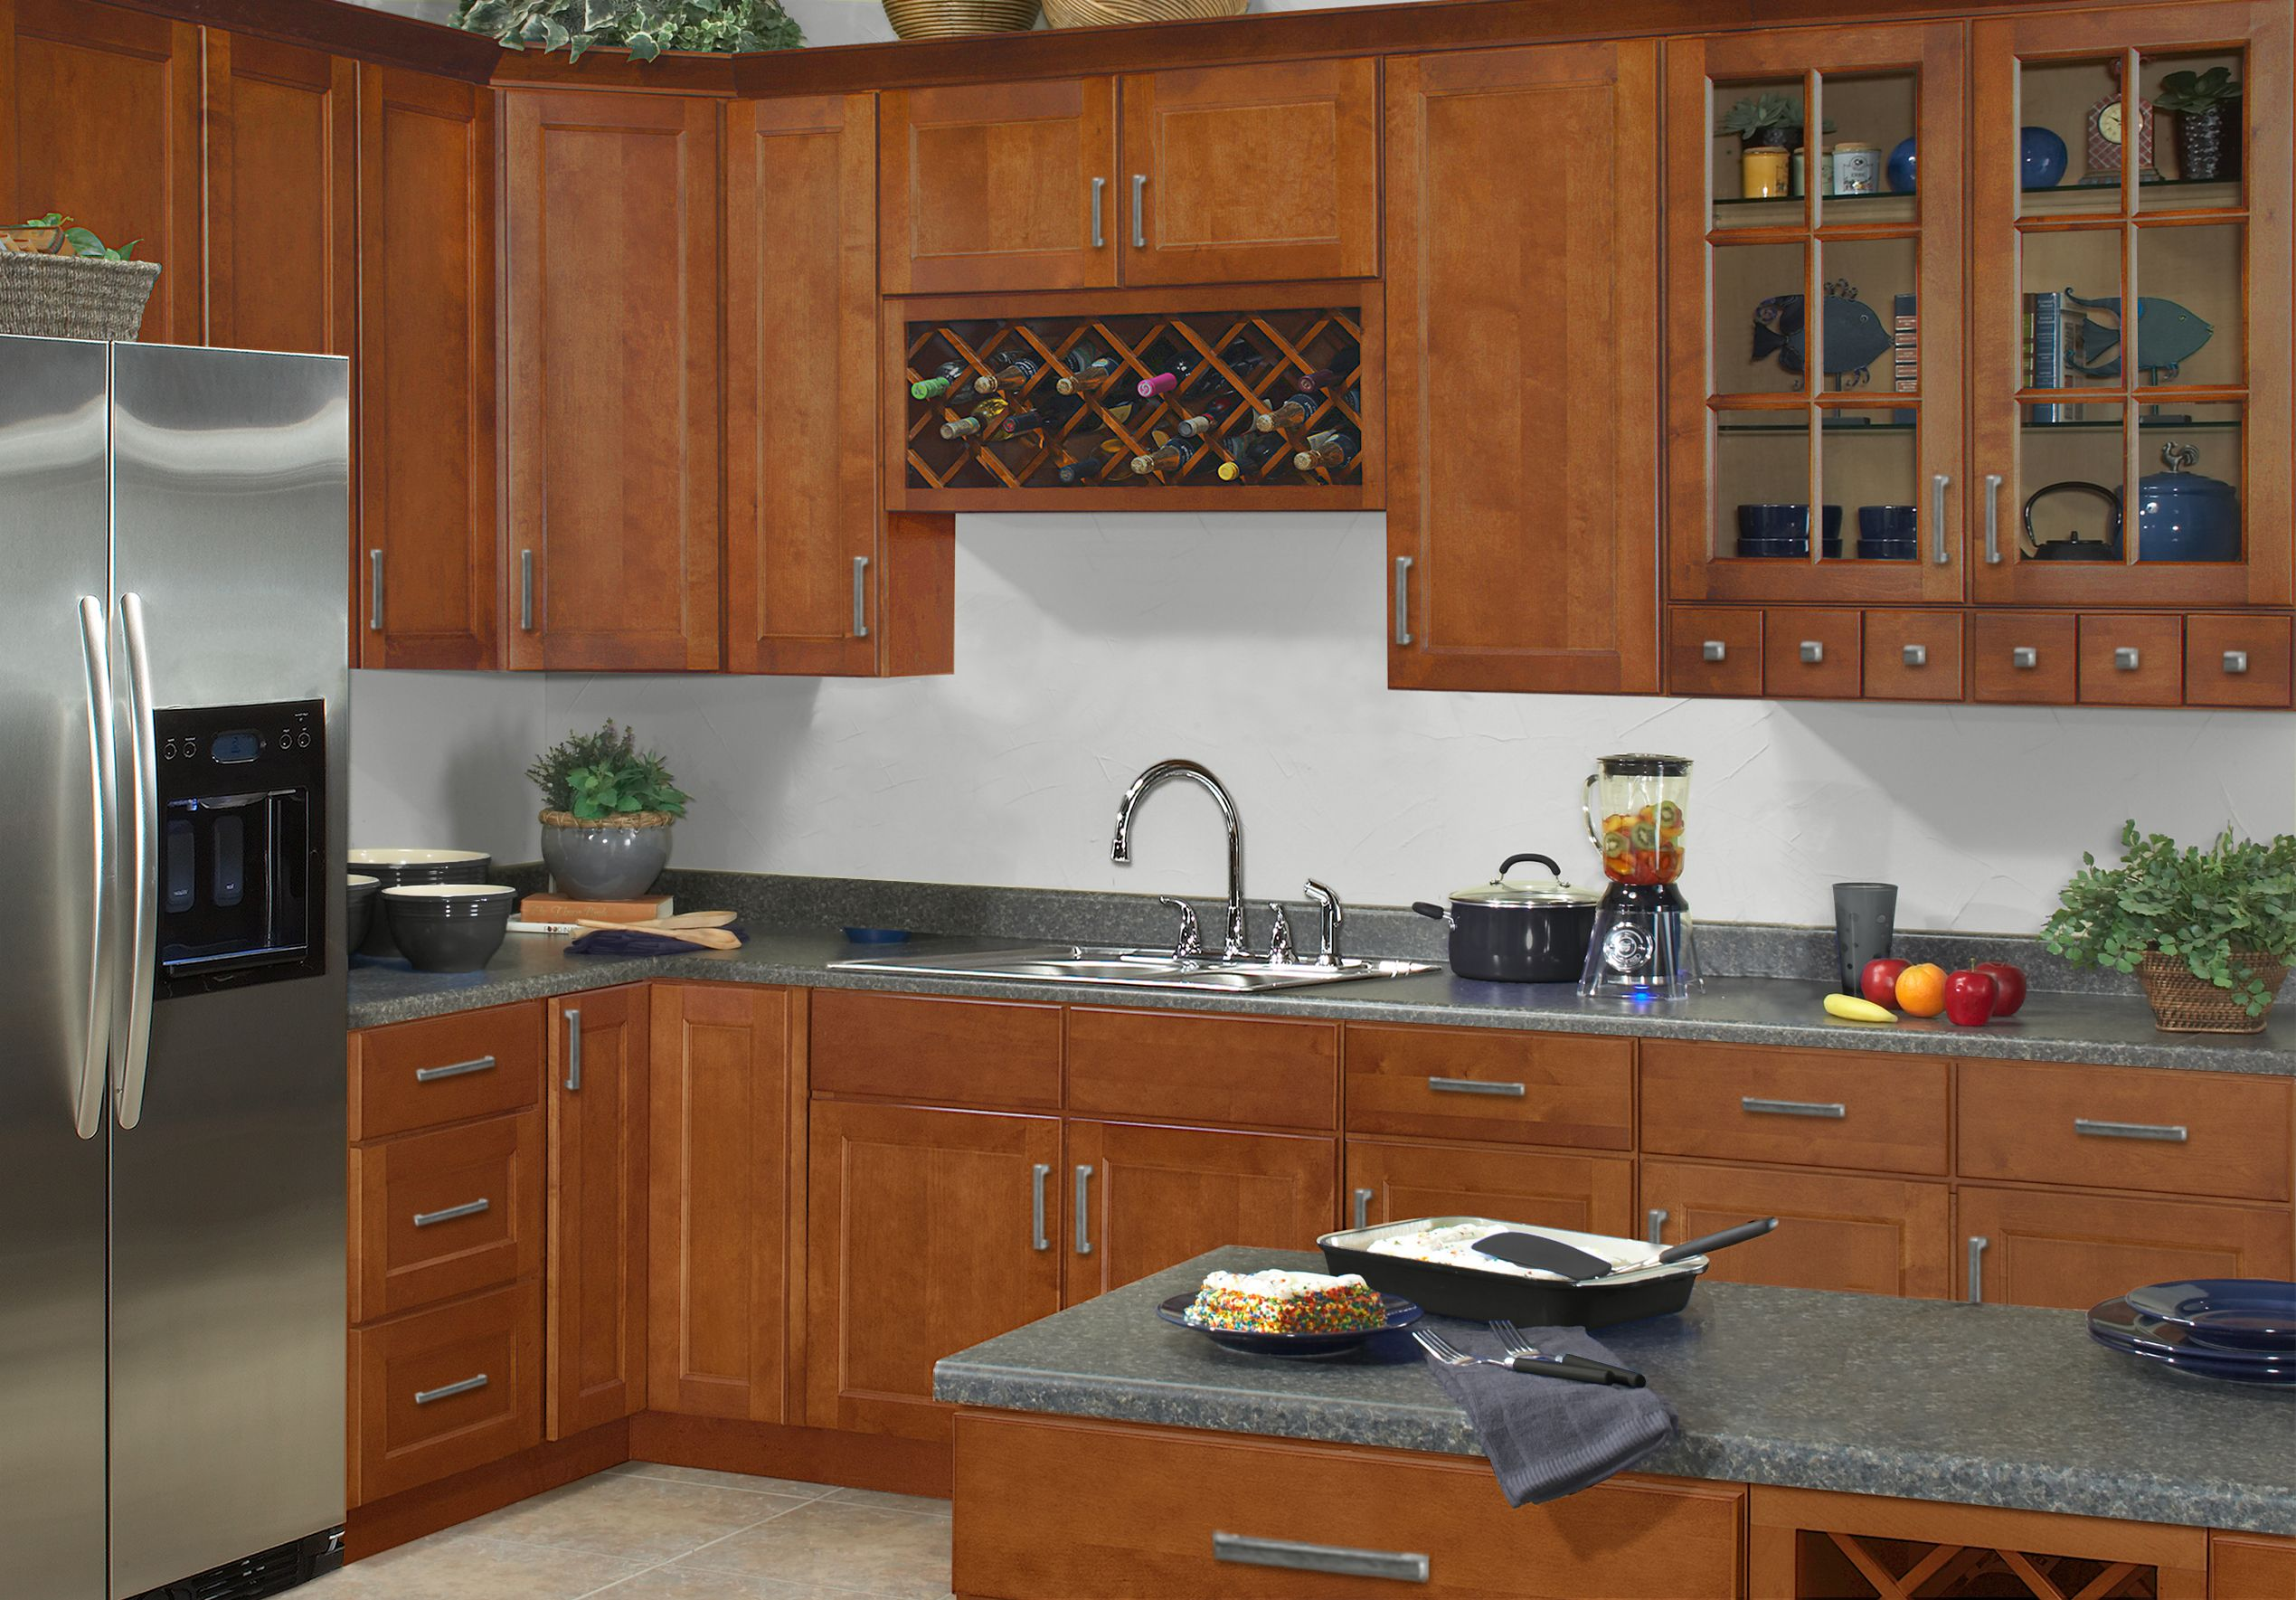 New Ellisen Kitchen Collection From Sunnywood Find Out More At Www Sunnywood Biz Kitchen Cabinets Brown Kitchen Cabinets Assembled Kitchen Cabinets